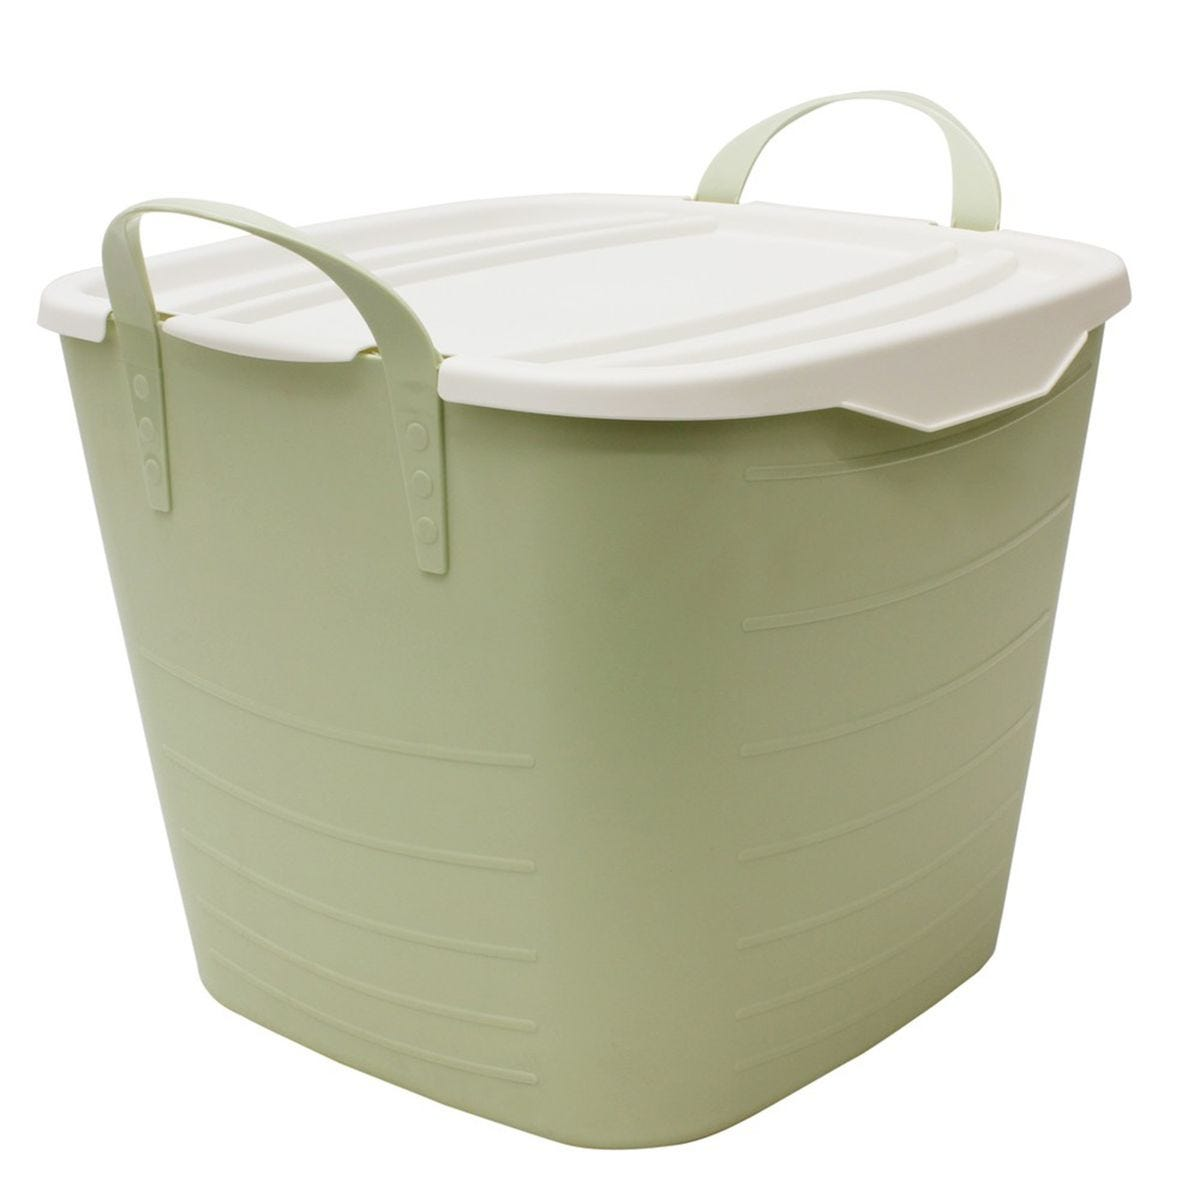 JVL Funktional Large 35 Litre Plastic Storage Container with Lid Green 49 x 44 x H41cm